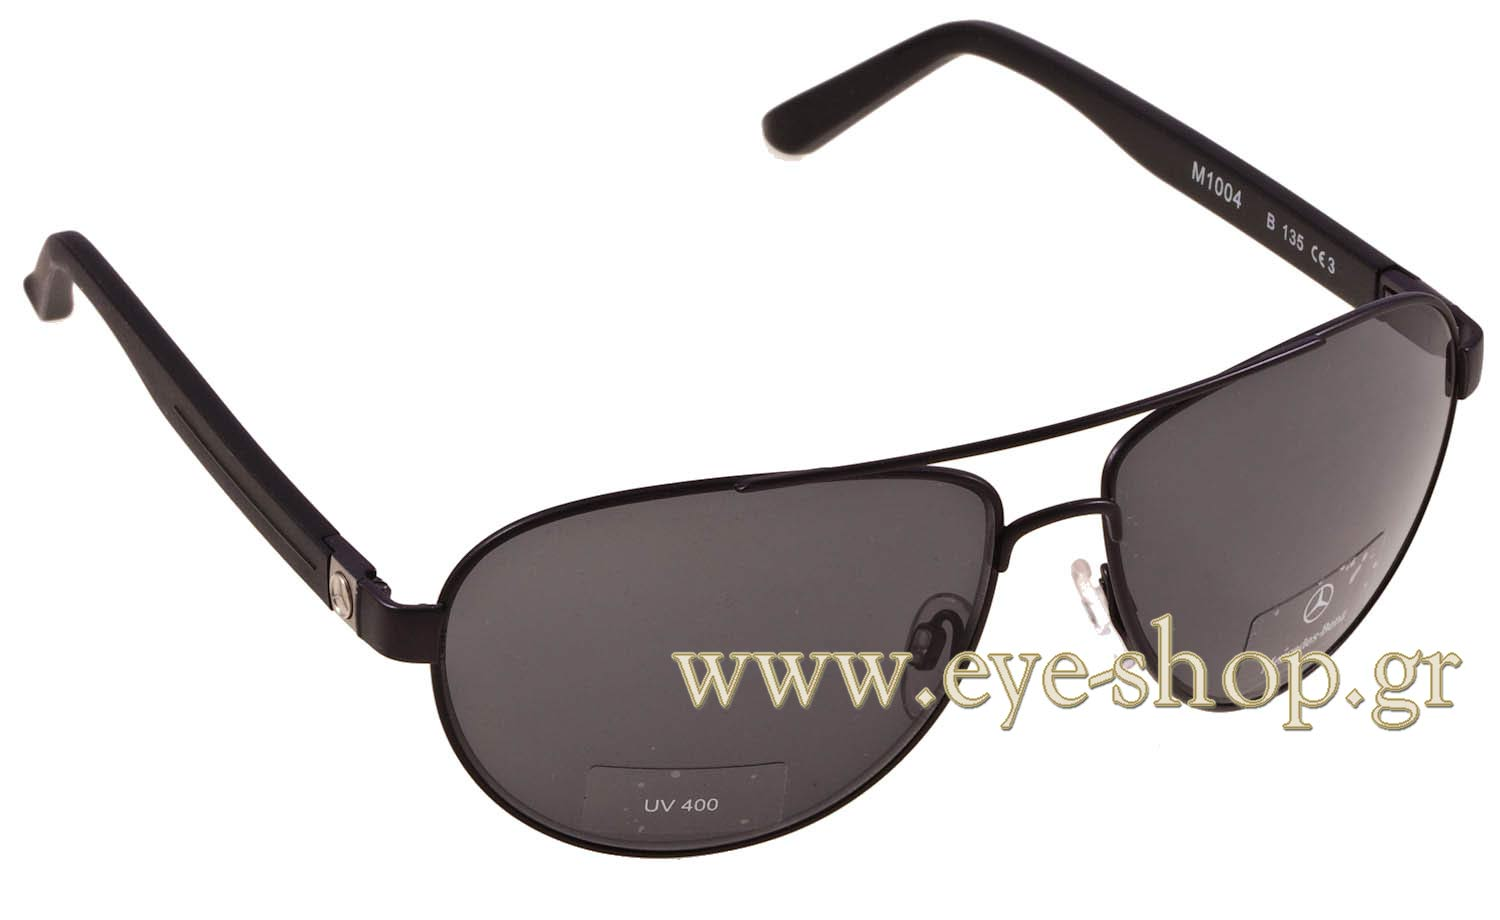 sunglasses mercedes benz m1004 b 61 men 2017 eyeshop ver1